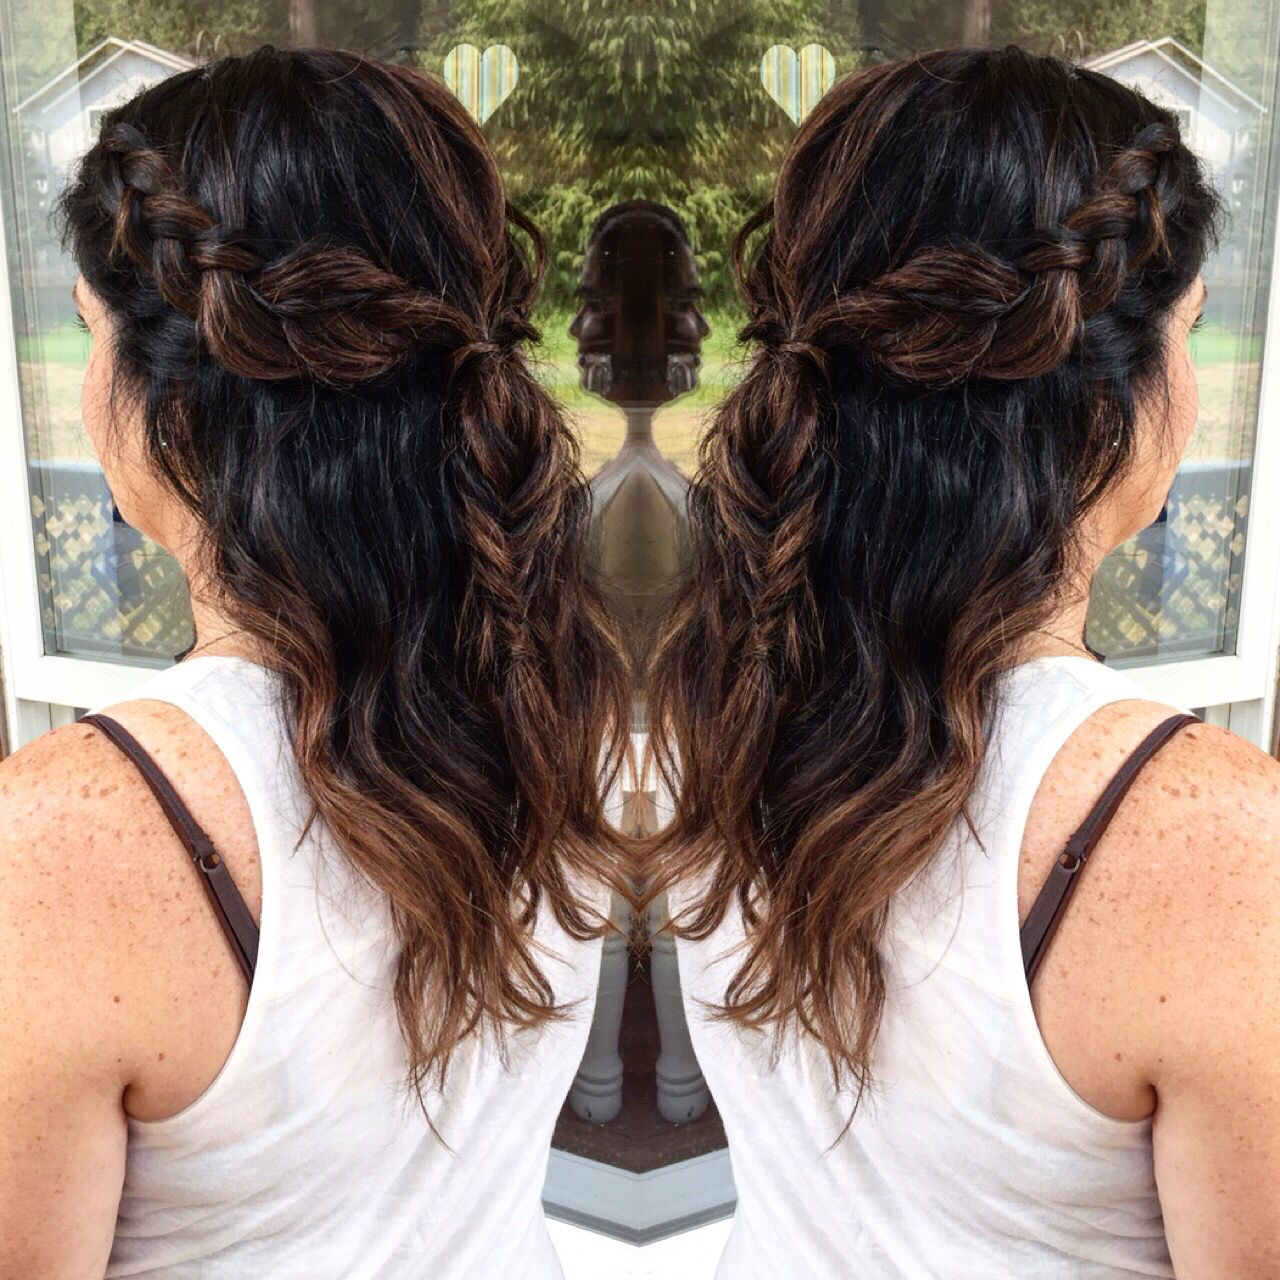 Braided boho hair for moms baby shower Special Occasion Hairstyles, Mom  Hairstyles, Mom And